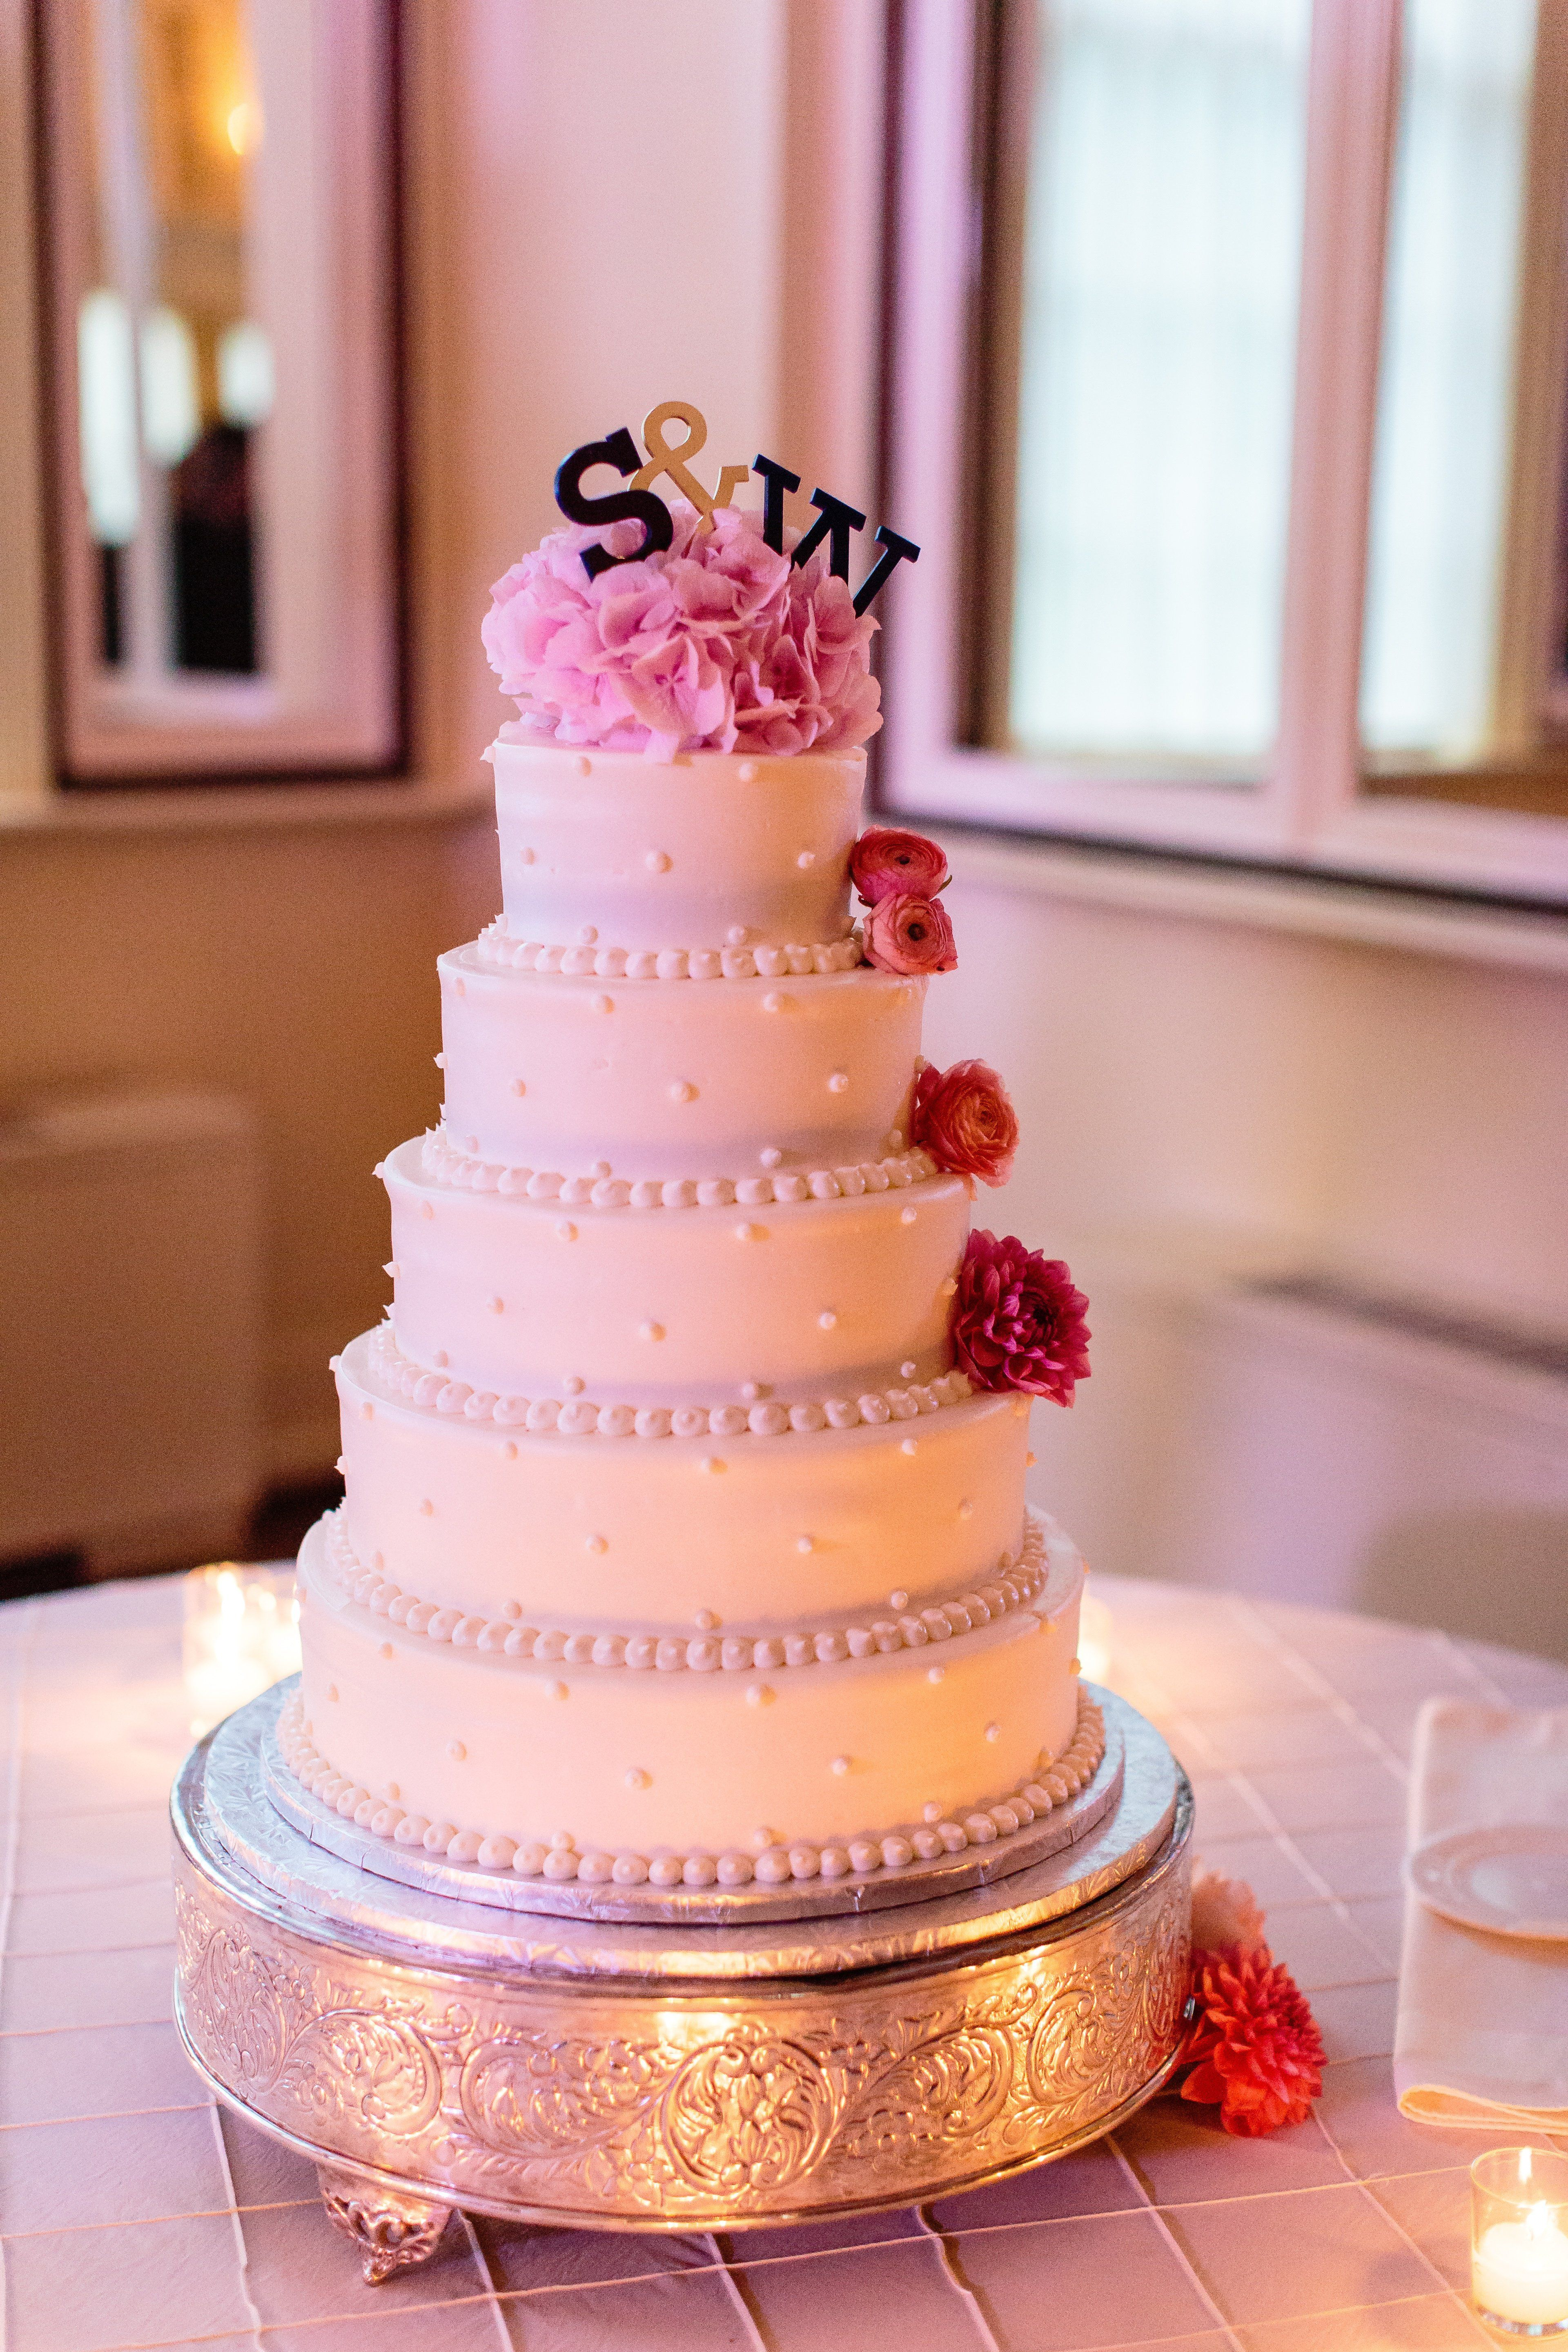 Tiered wedding cake with flowers and initials | Wedding Cakes ...